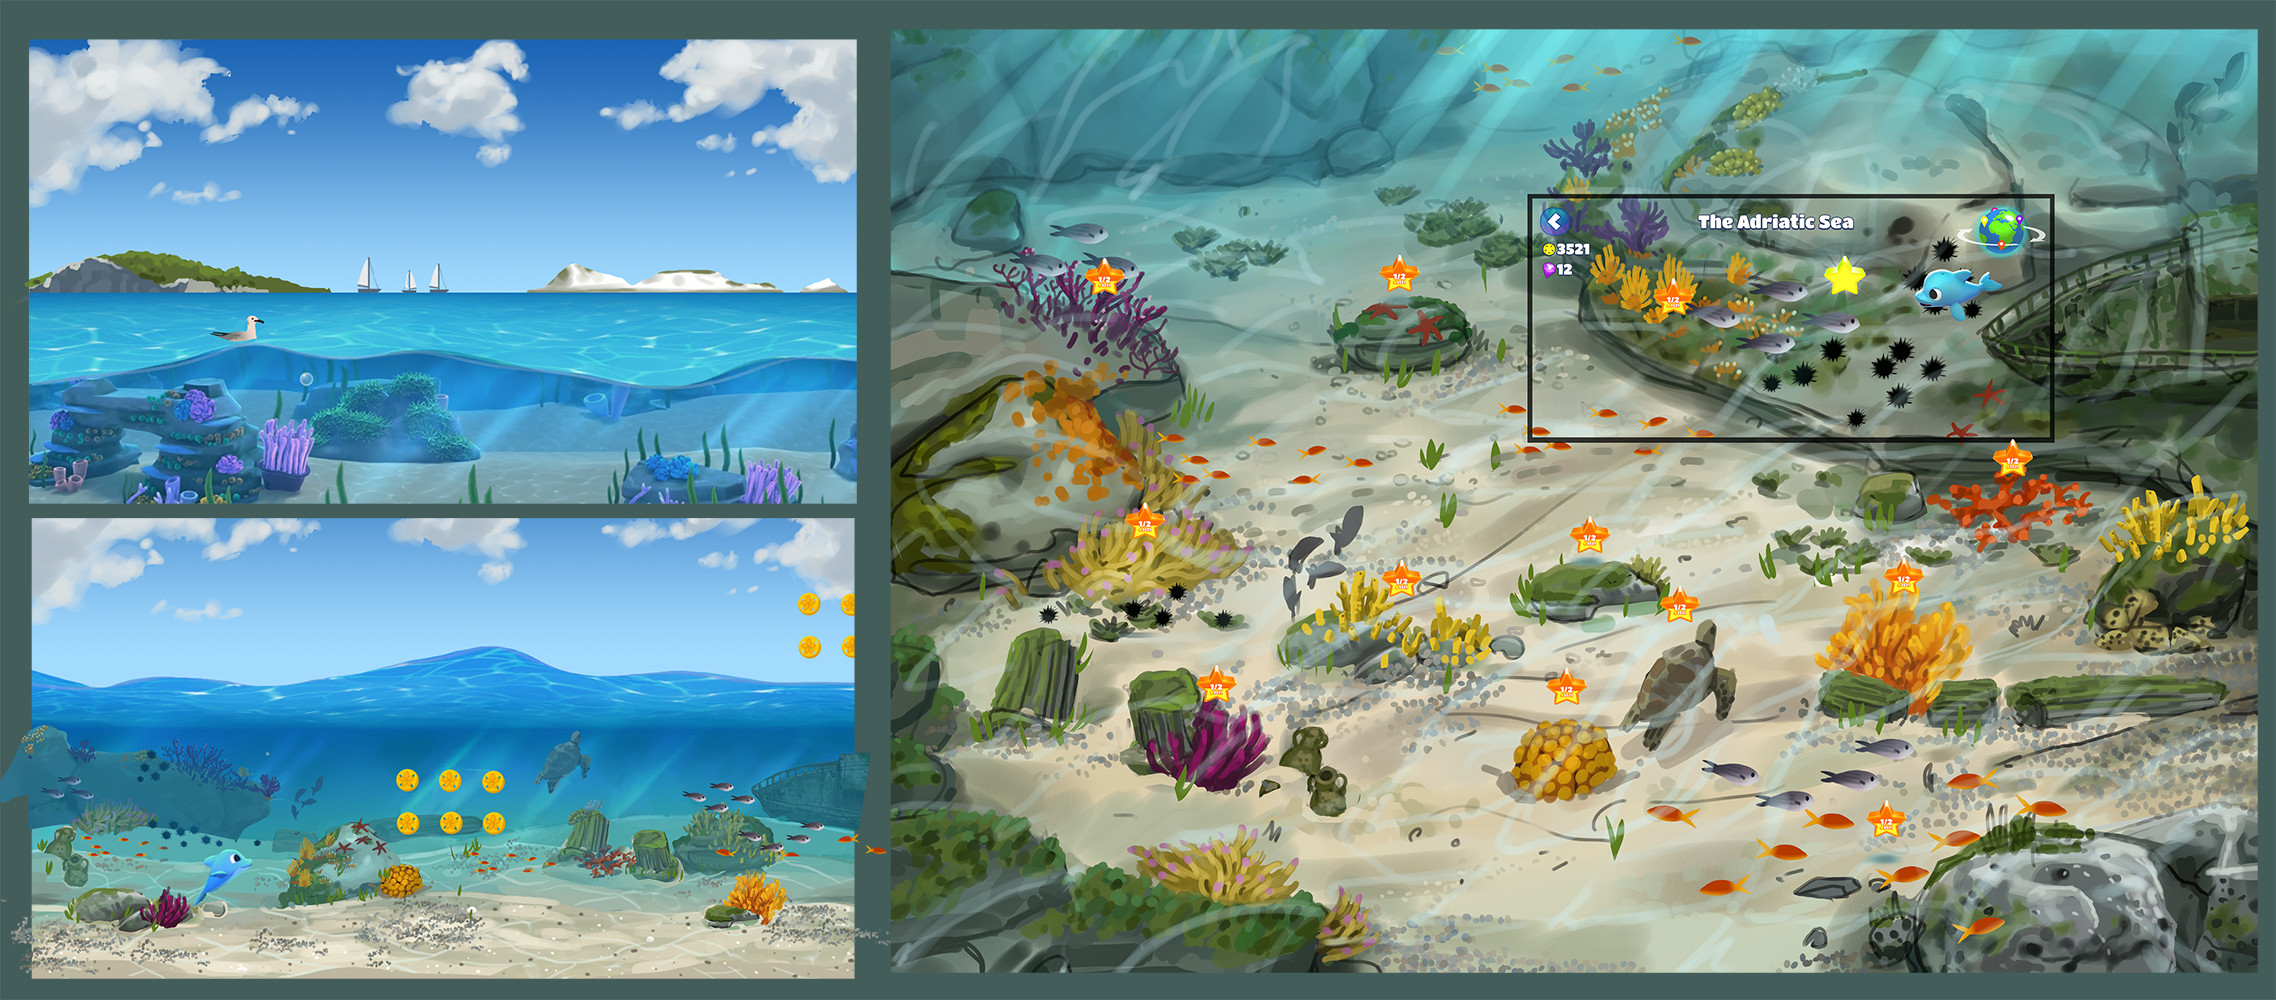 Concepts for gameplay and meta-game environments for the Adriatic biome  Each world of the game is set in a different part of the world affected by pollution that the player must fight off to bring diversity back to the environment.